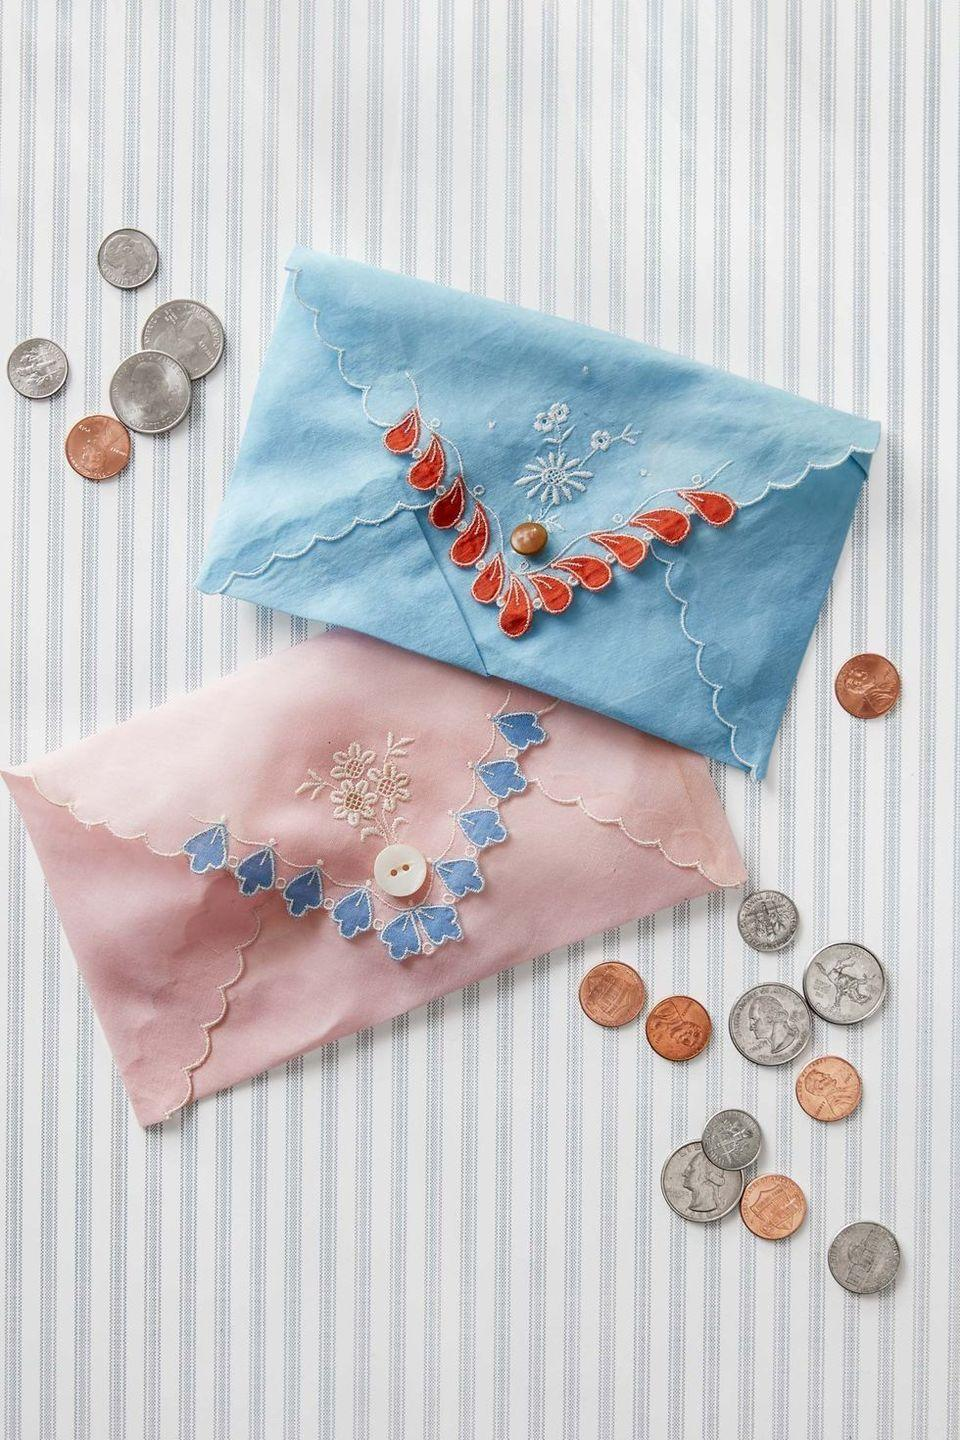 <p>Mom's are notorious for having spare change, so she will definitely appreciate this handmade coin purse for stashing all of her loose pennies and dimes! </p>